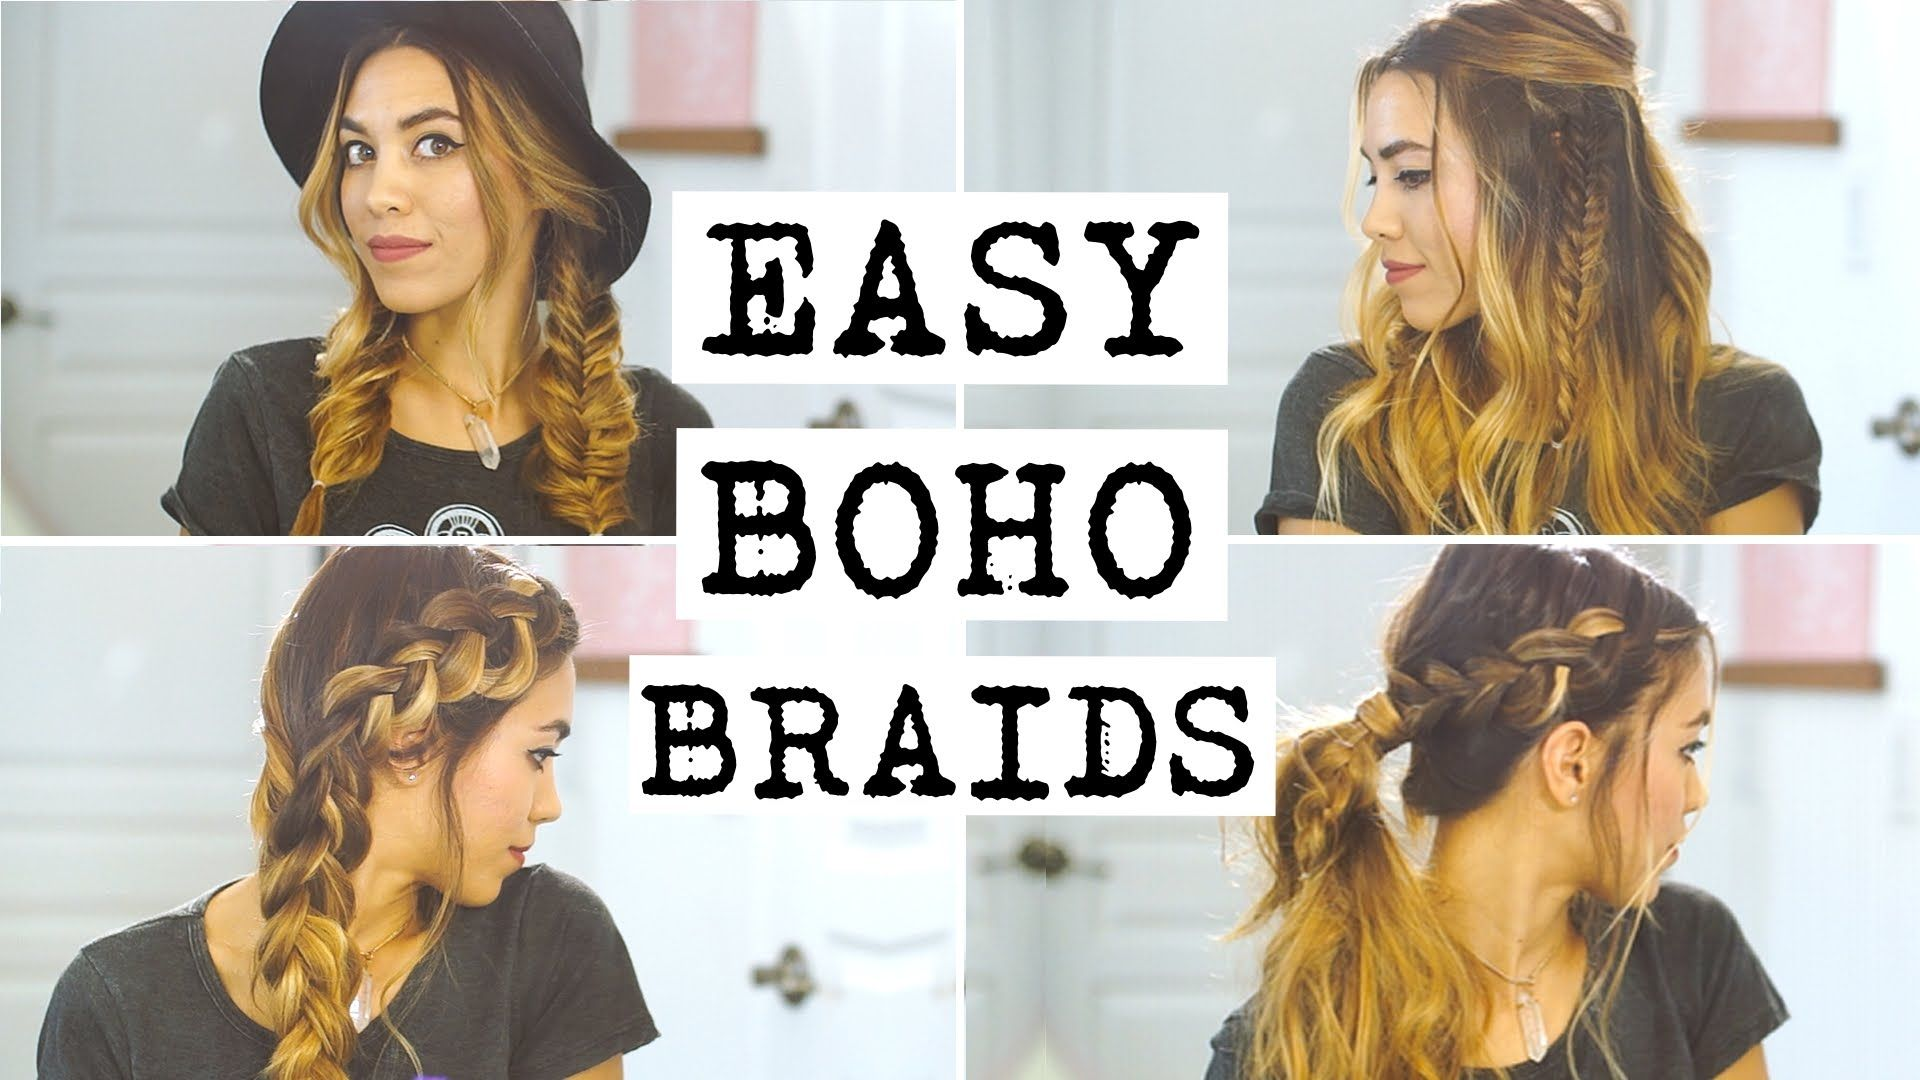 4 Easy Boho Braid Hairstyles Boho Braided Hairstyles Boho Braids Braided Hairstyles